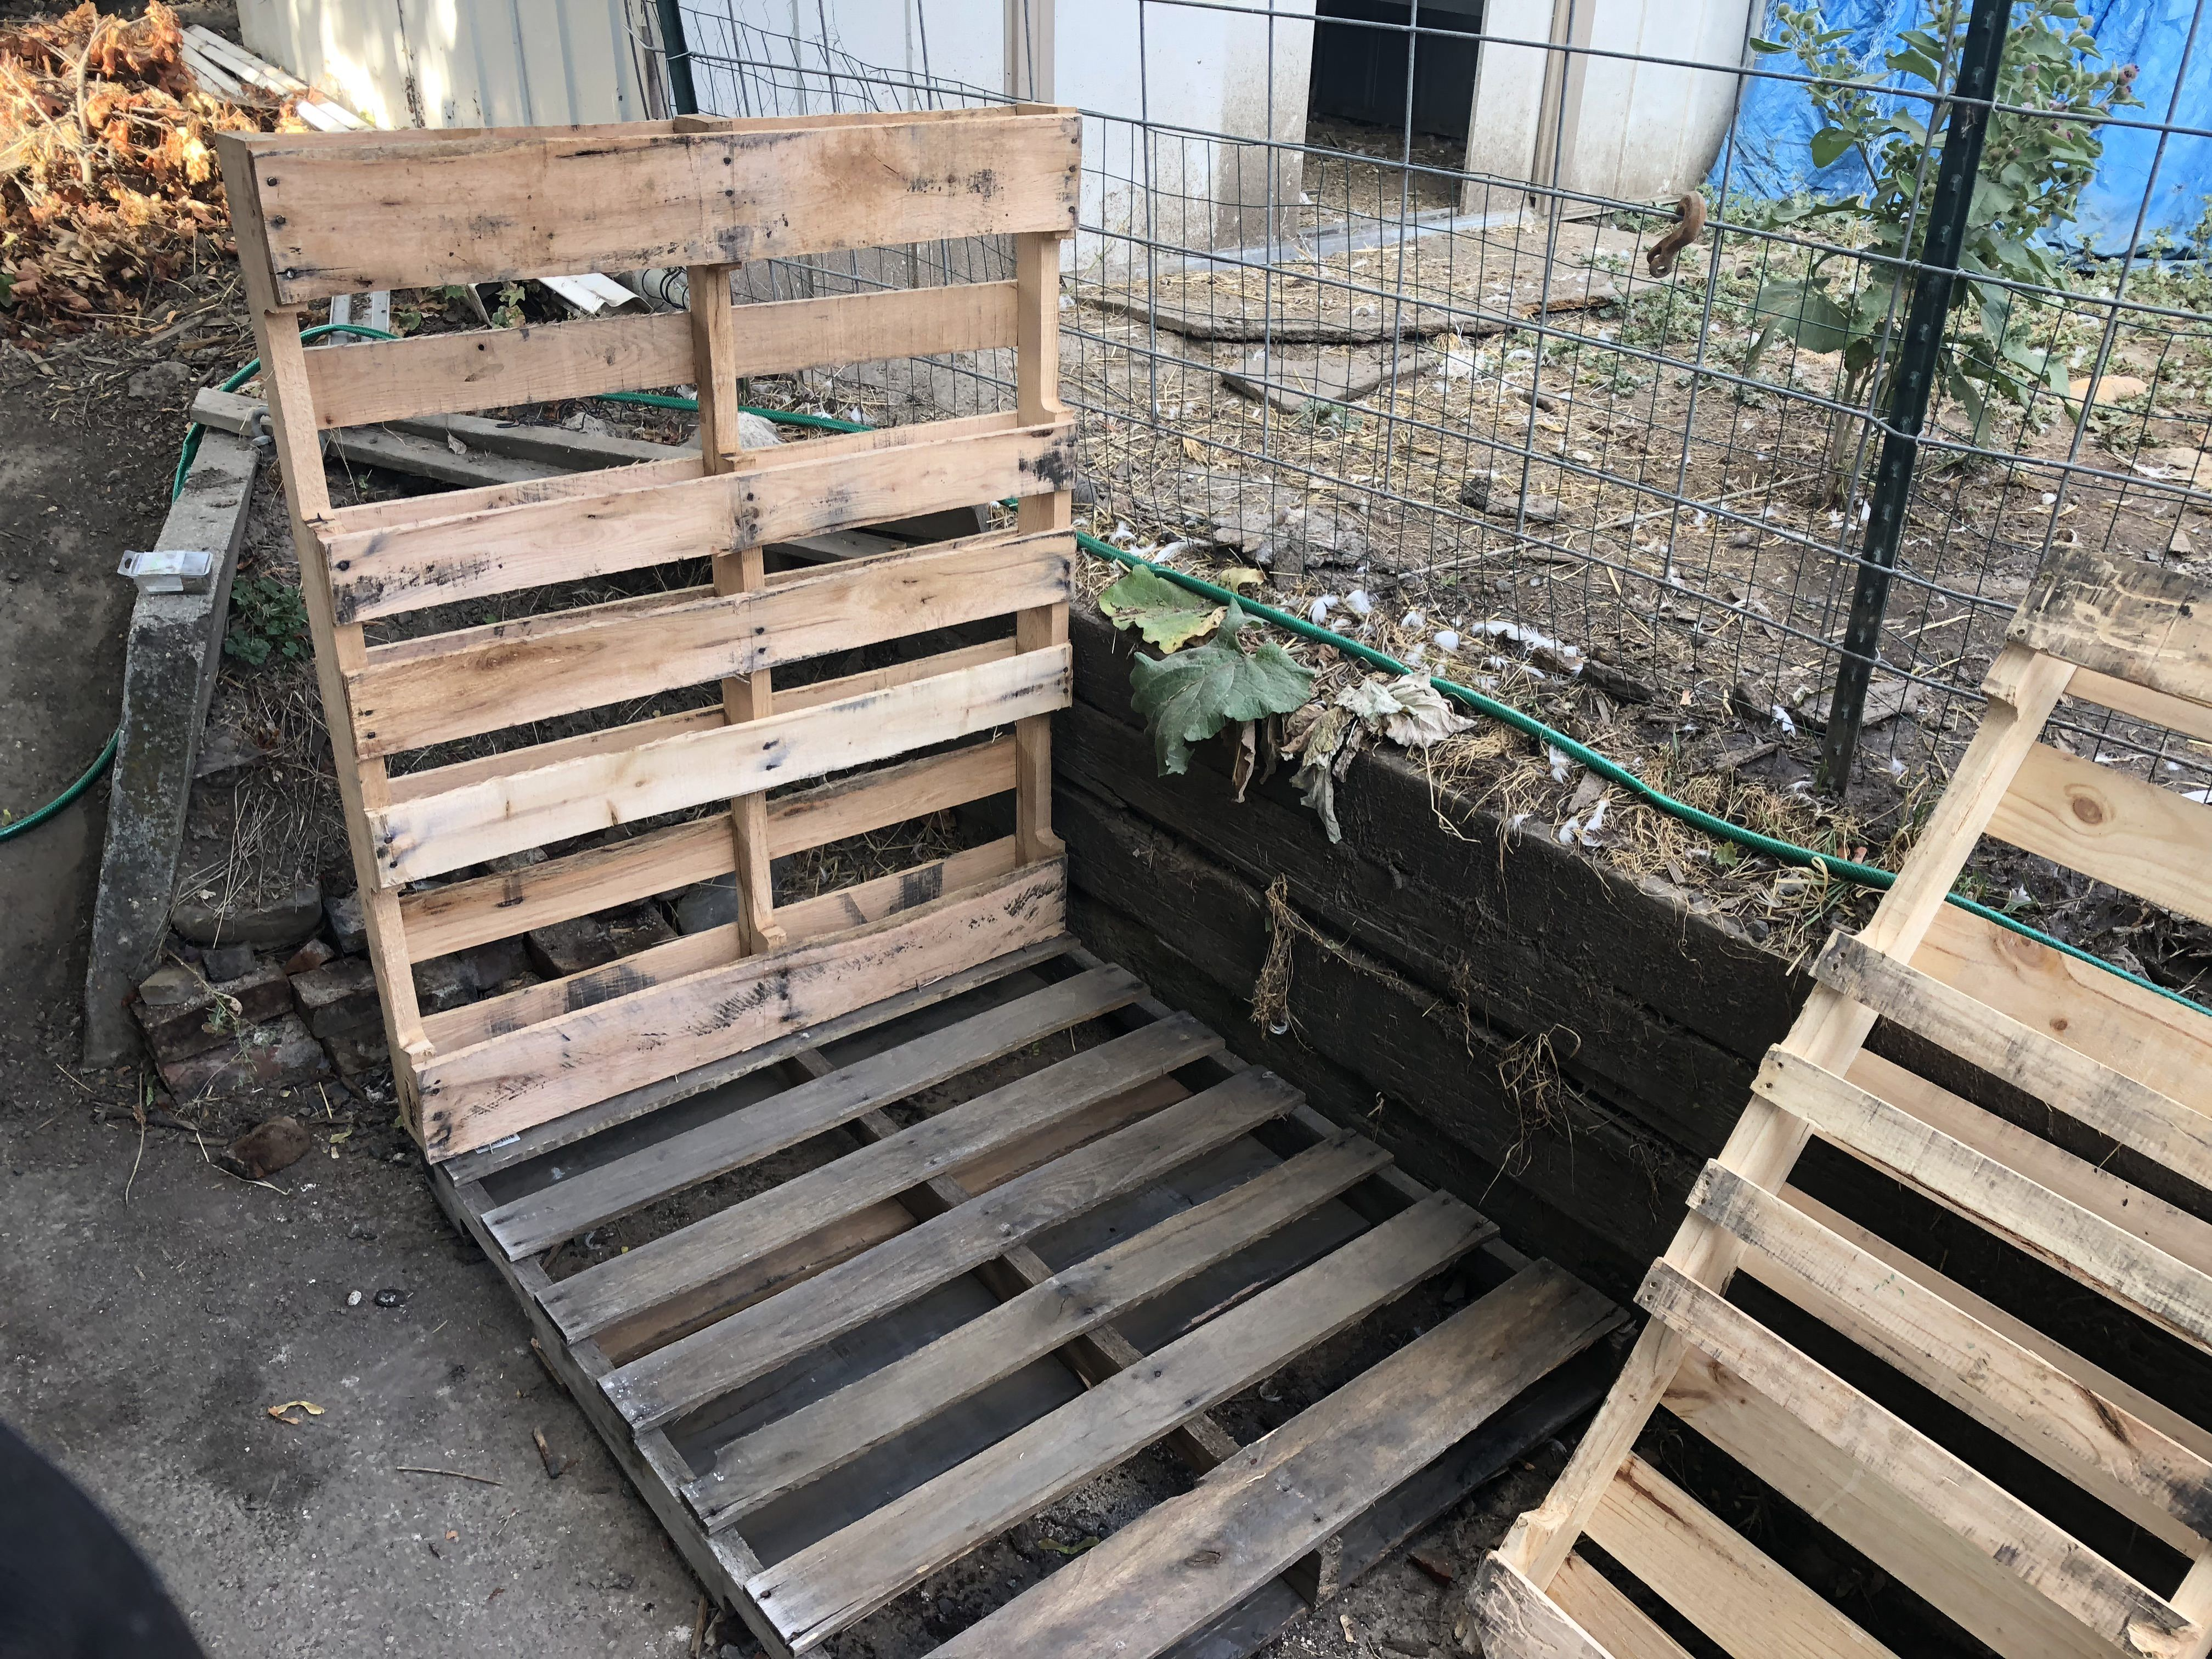 Wood storage shed made of pallets and single 2x4 hold 1 cord